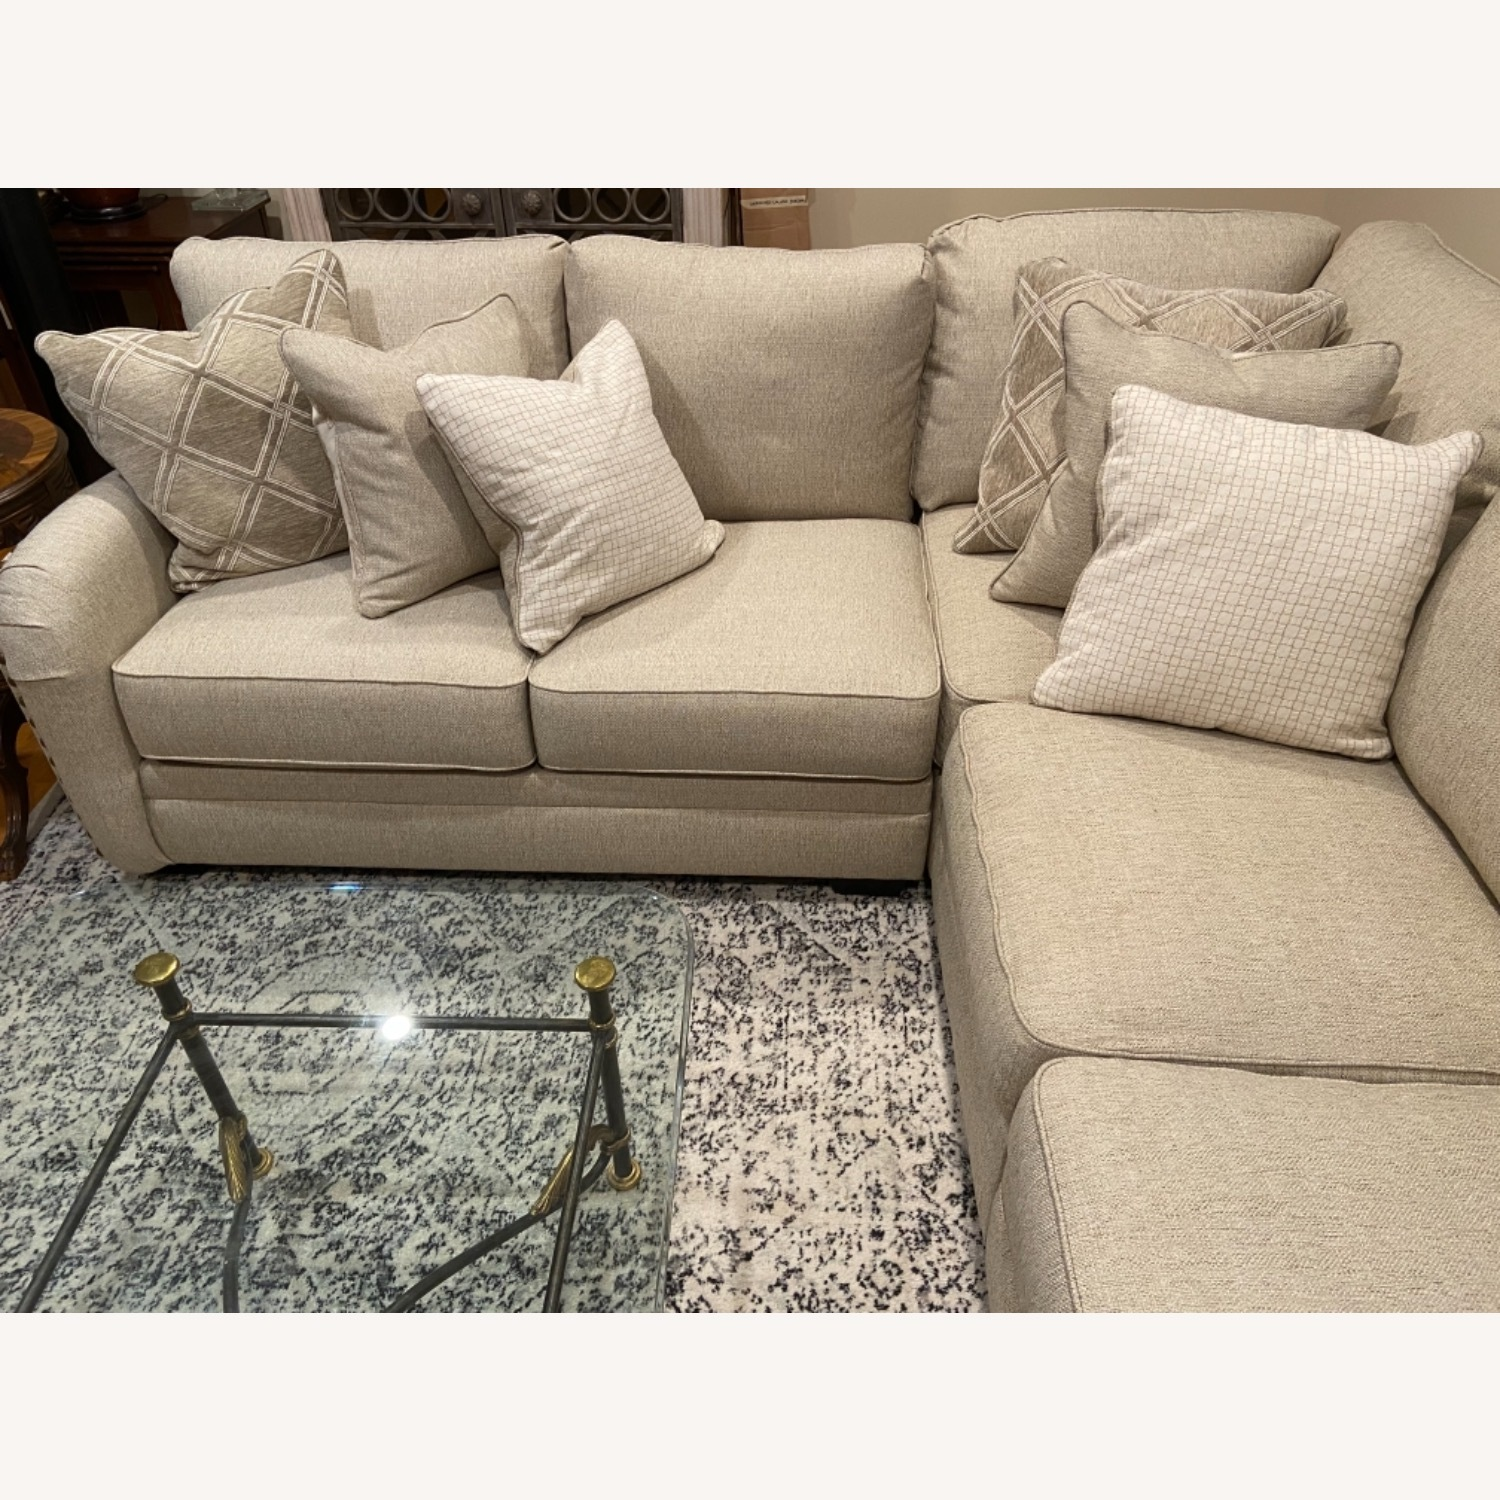 Ashley Furniture 5-pc Sectional with Chaise - image-3